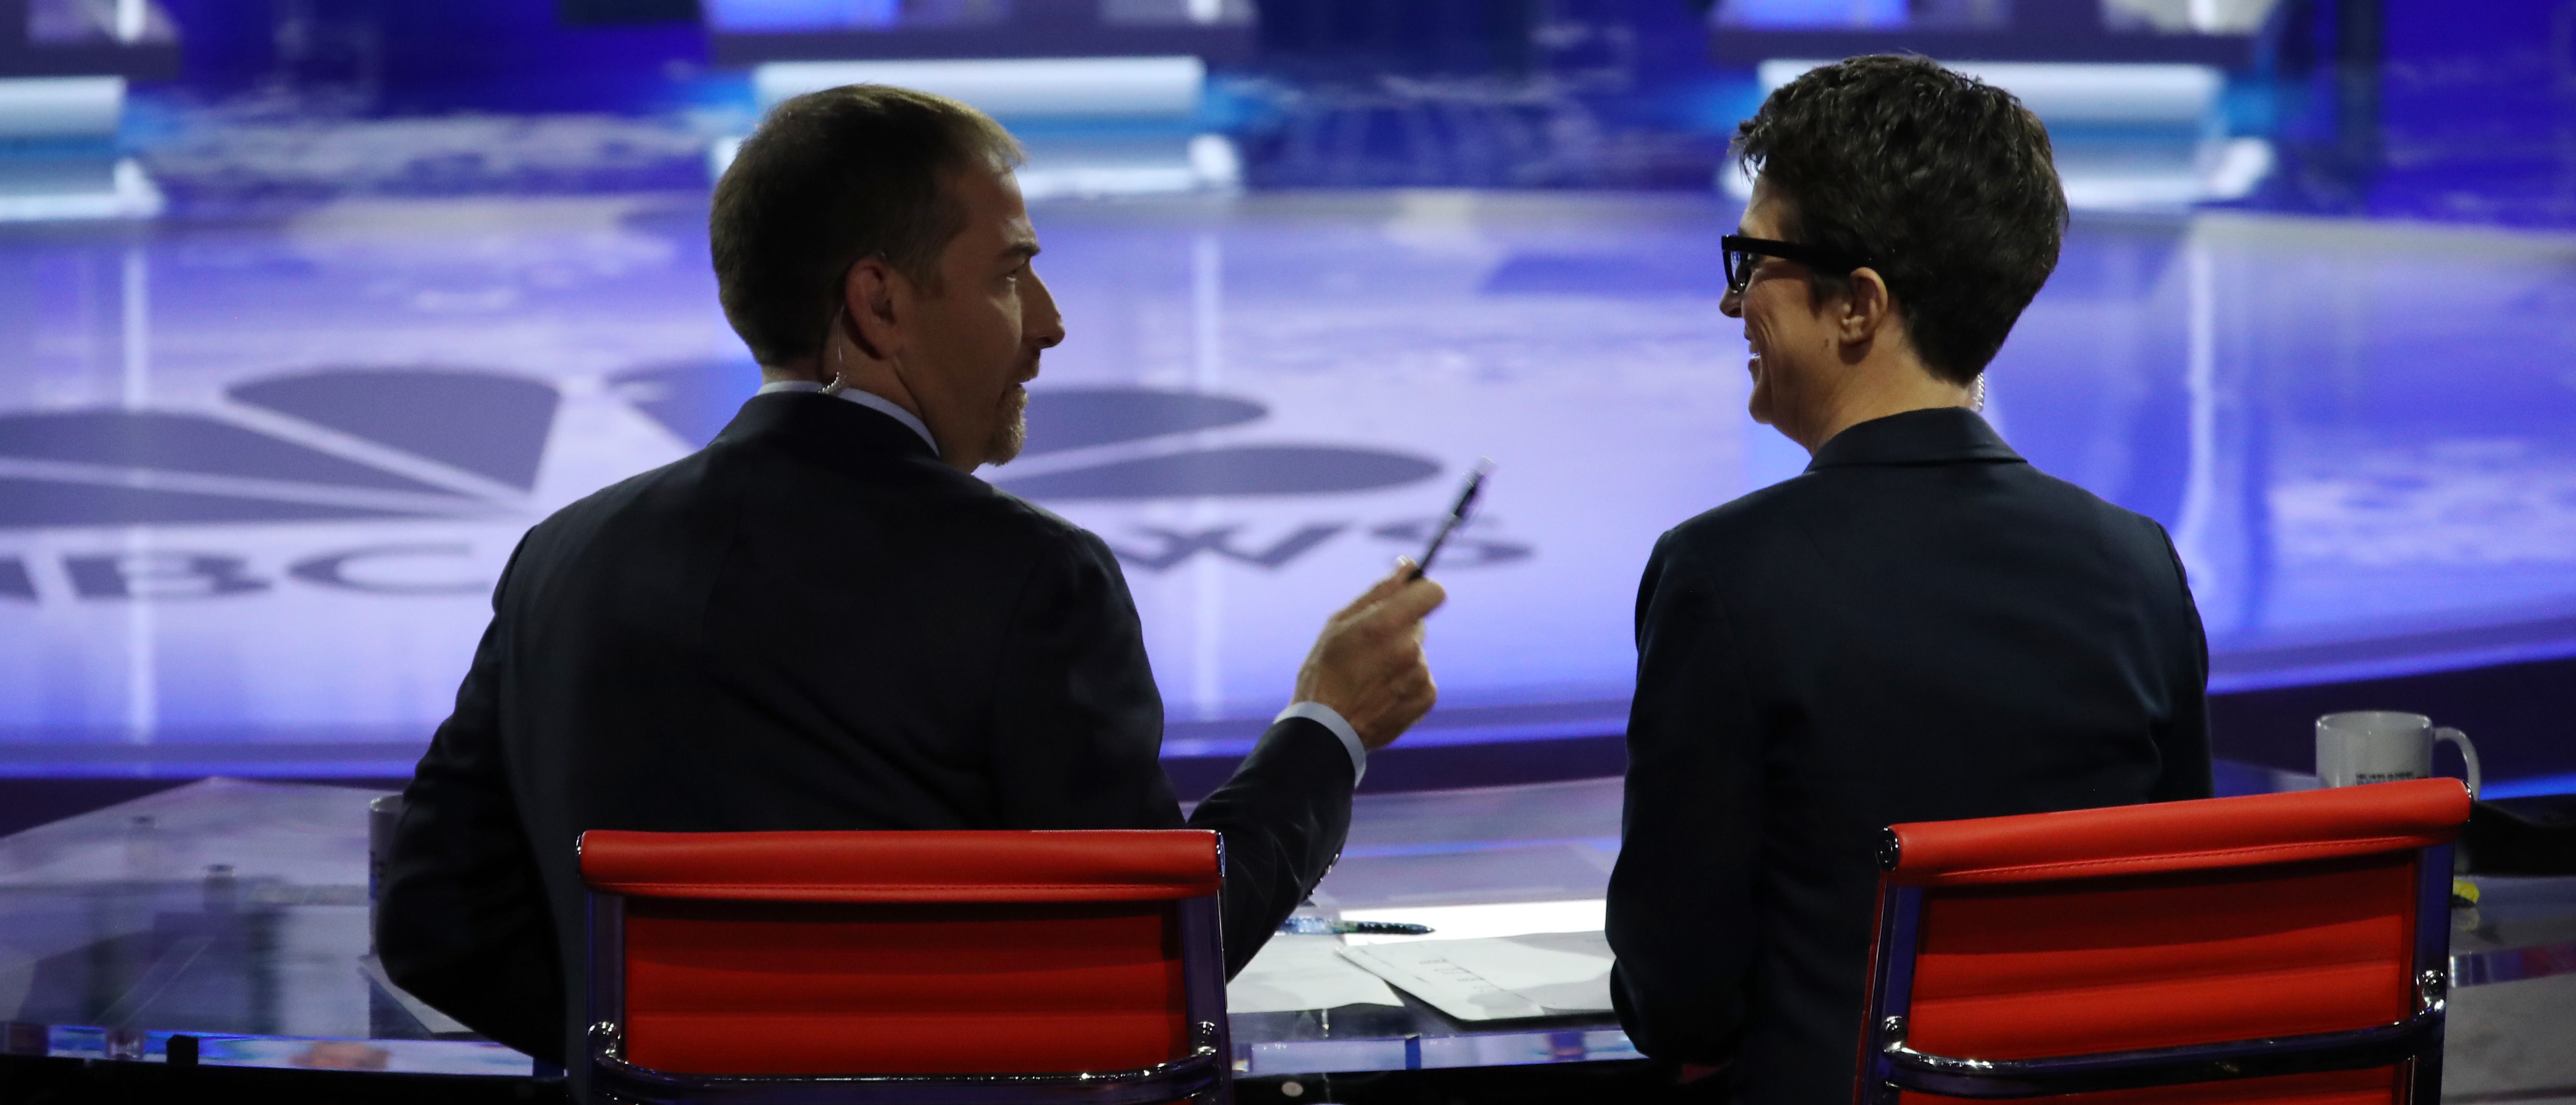 Moderators Chuck Todd of NBC News and Rachel Maddow of MSNBC talk during the second night of the first Democratic presidential debate on June 27, 2019 in Miami, Florida. (Drew Angerer/Getty Images)